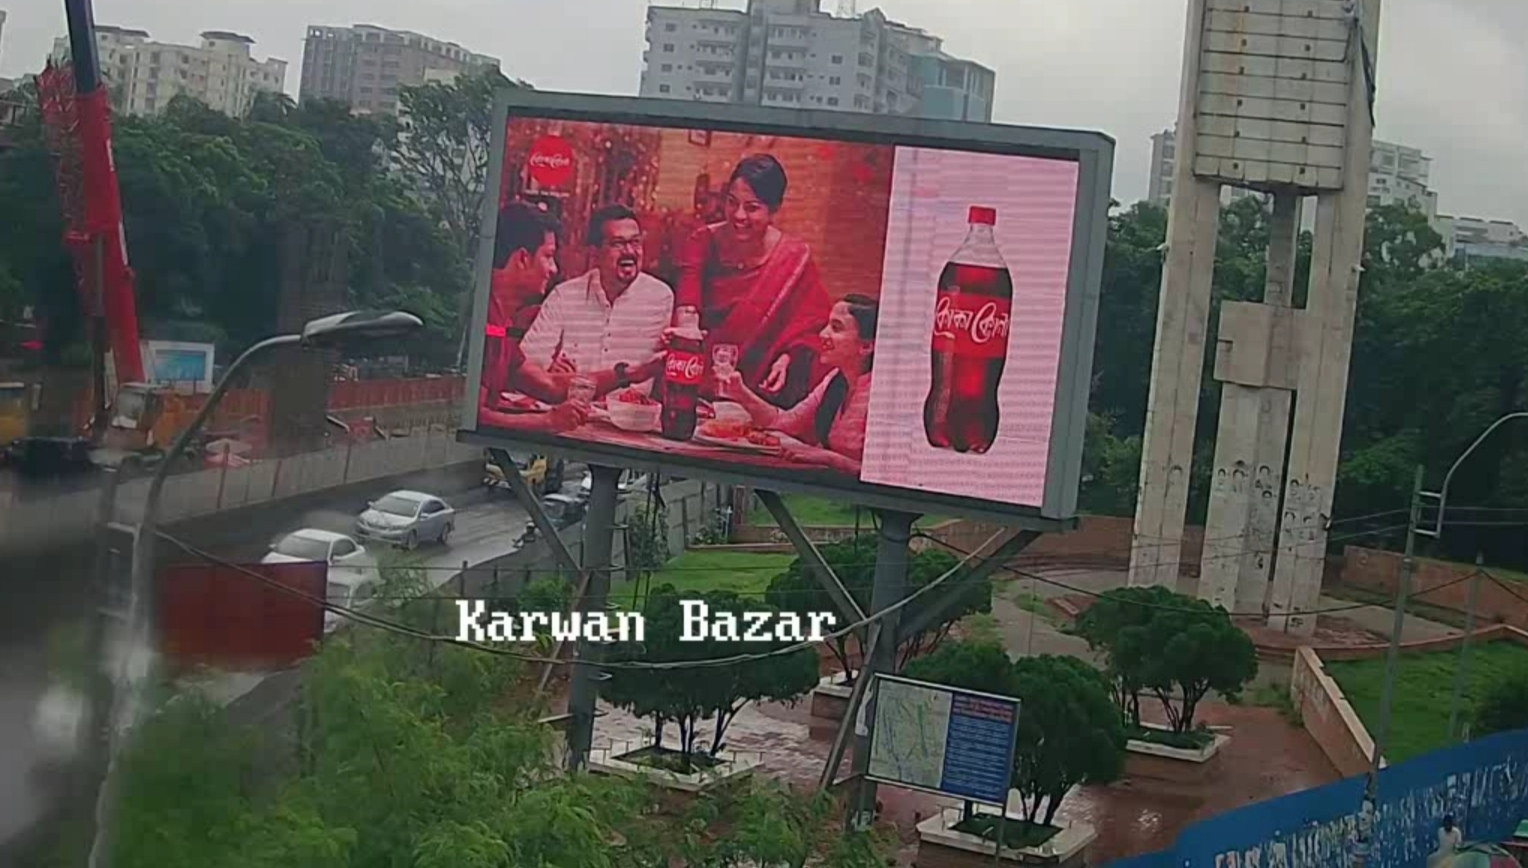 LED BILLBOARD IN BANGLADESH